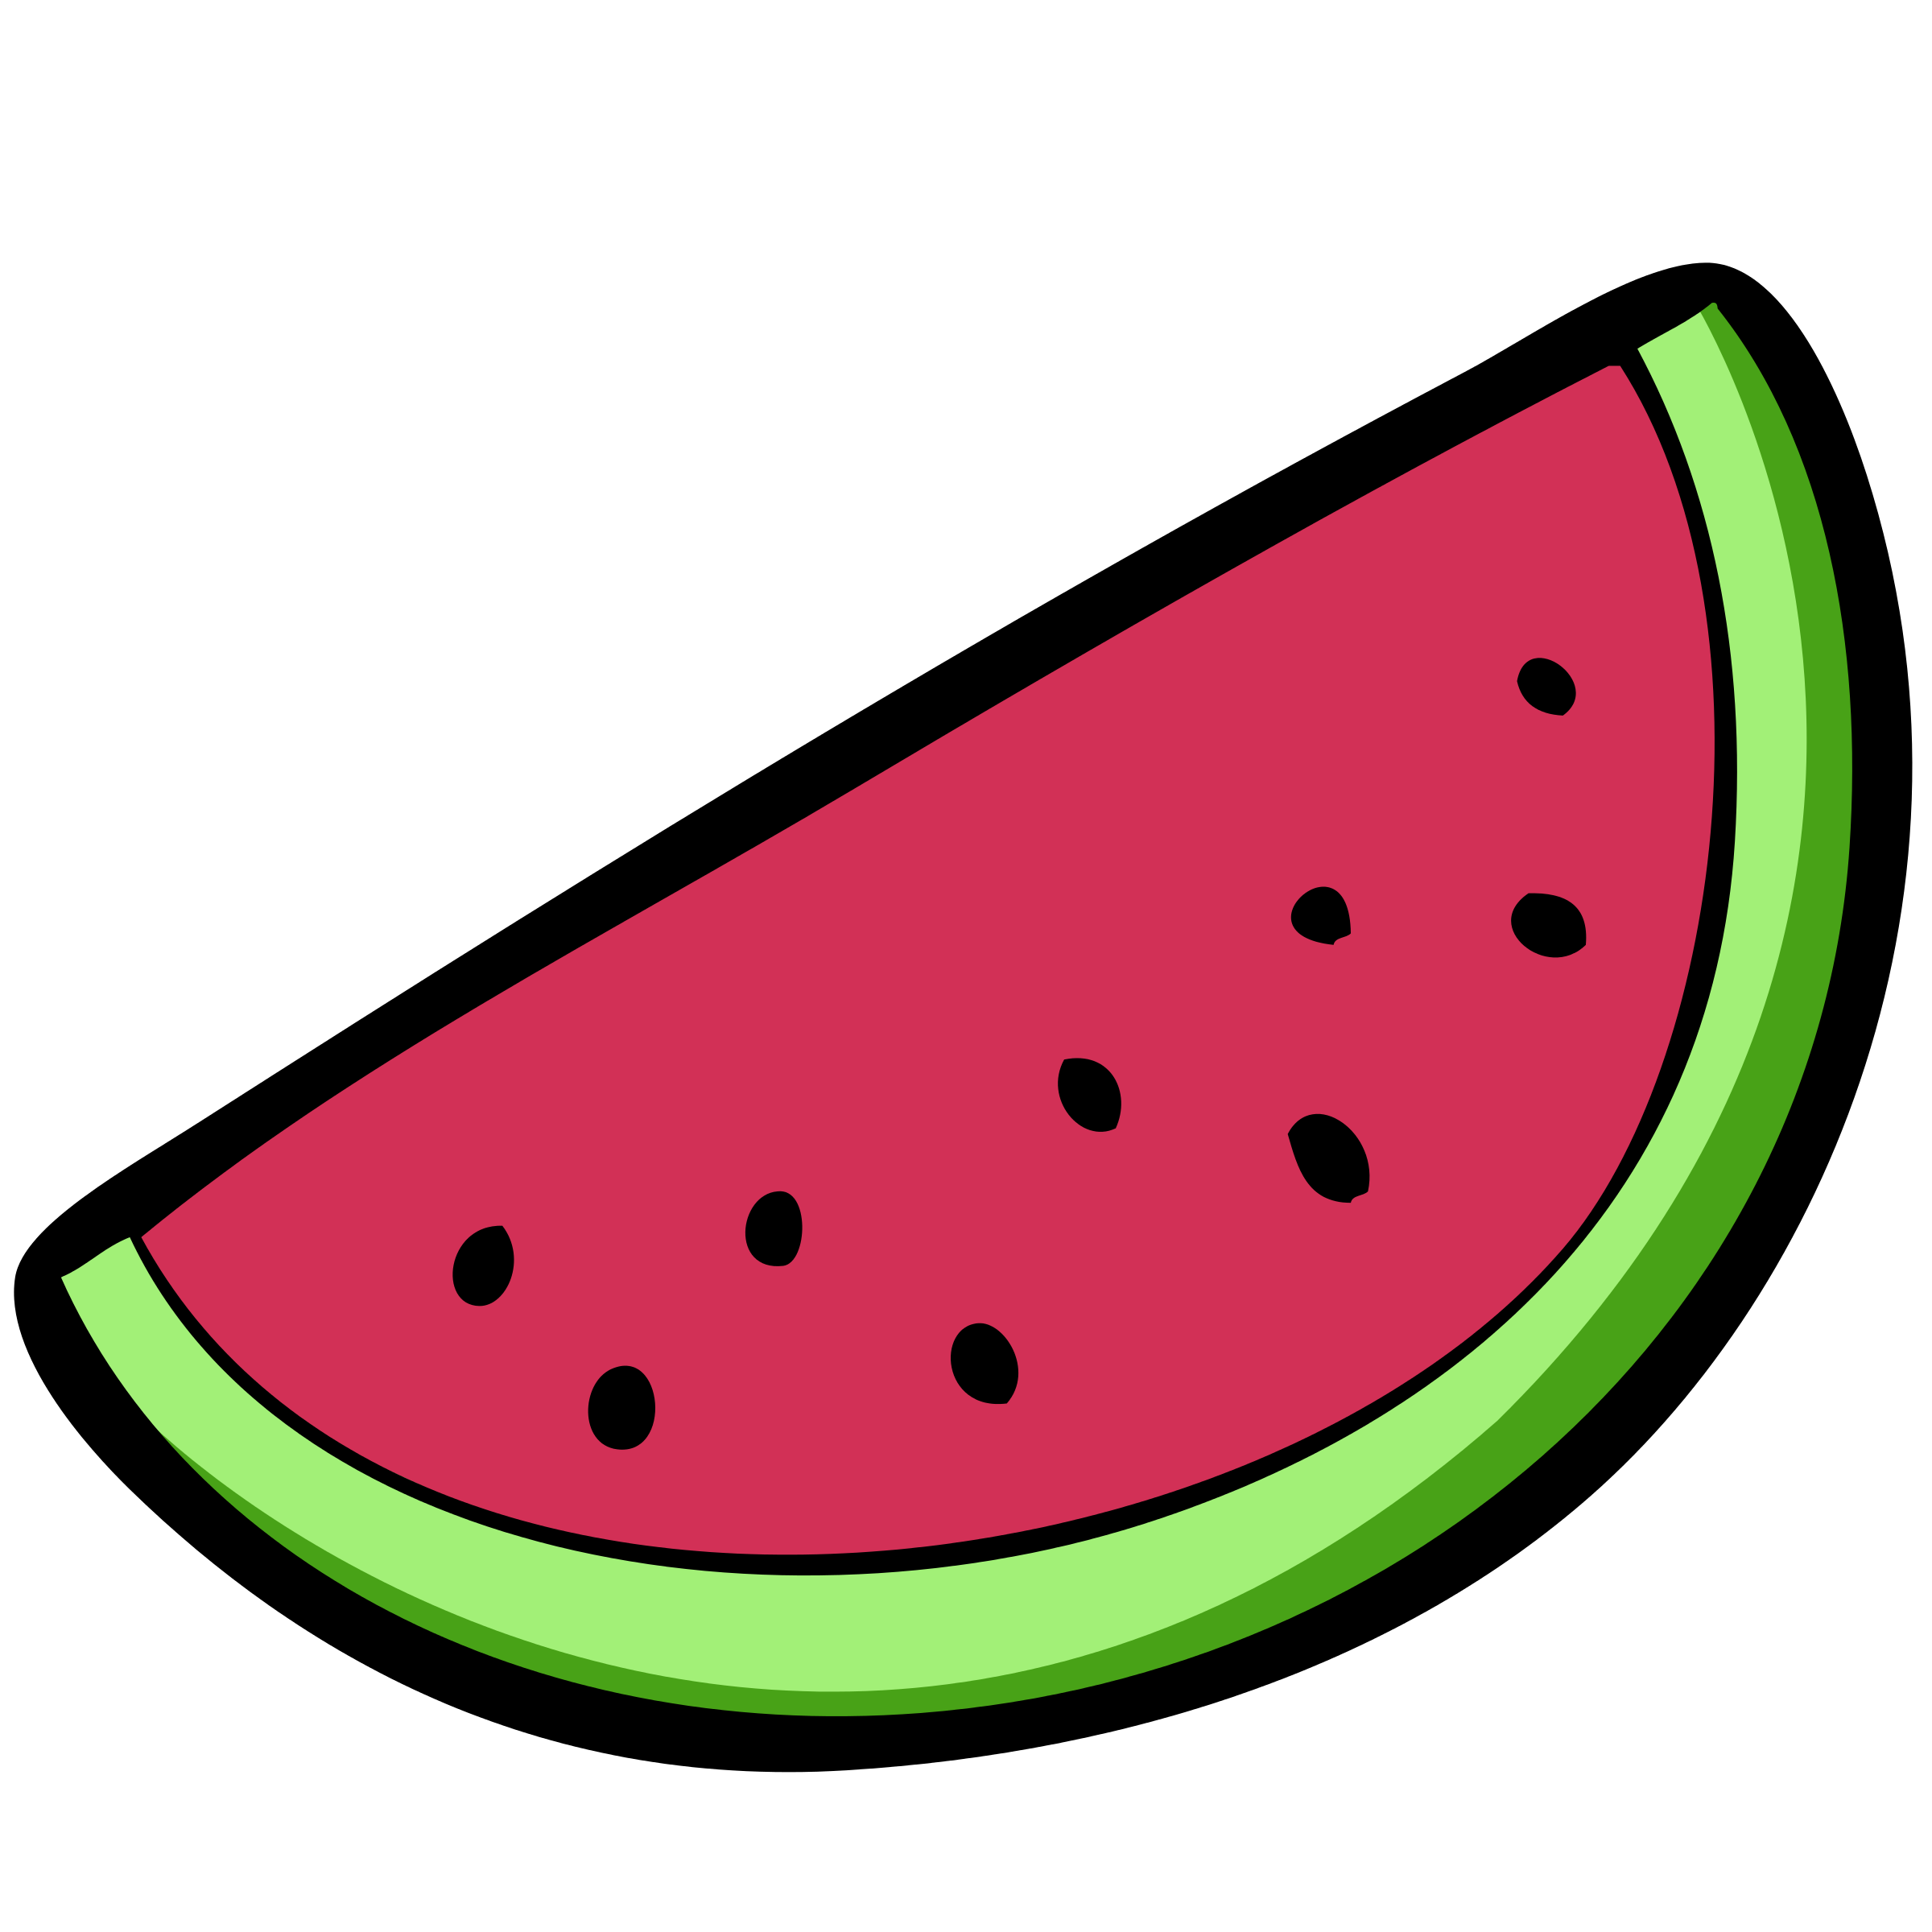 Clip art for kids. Heart clipart watermelon